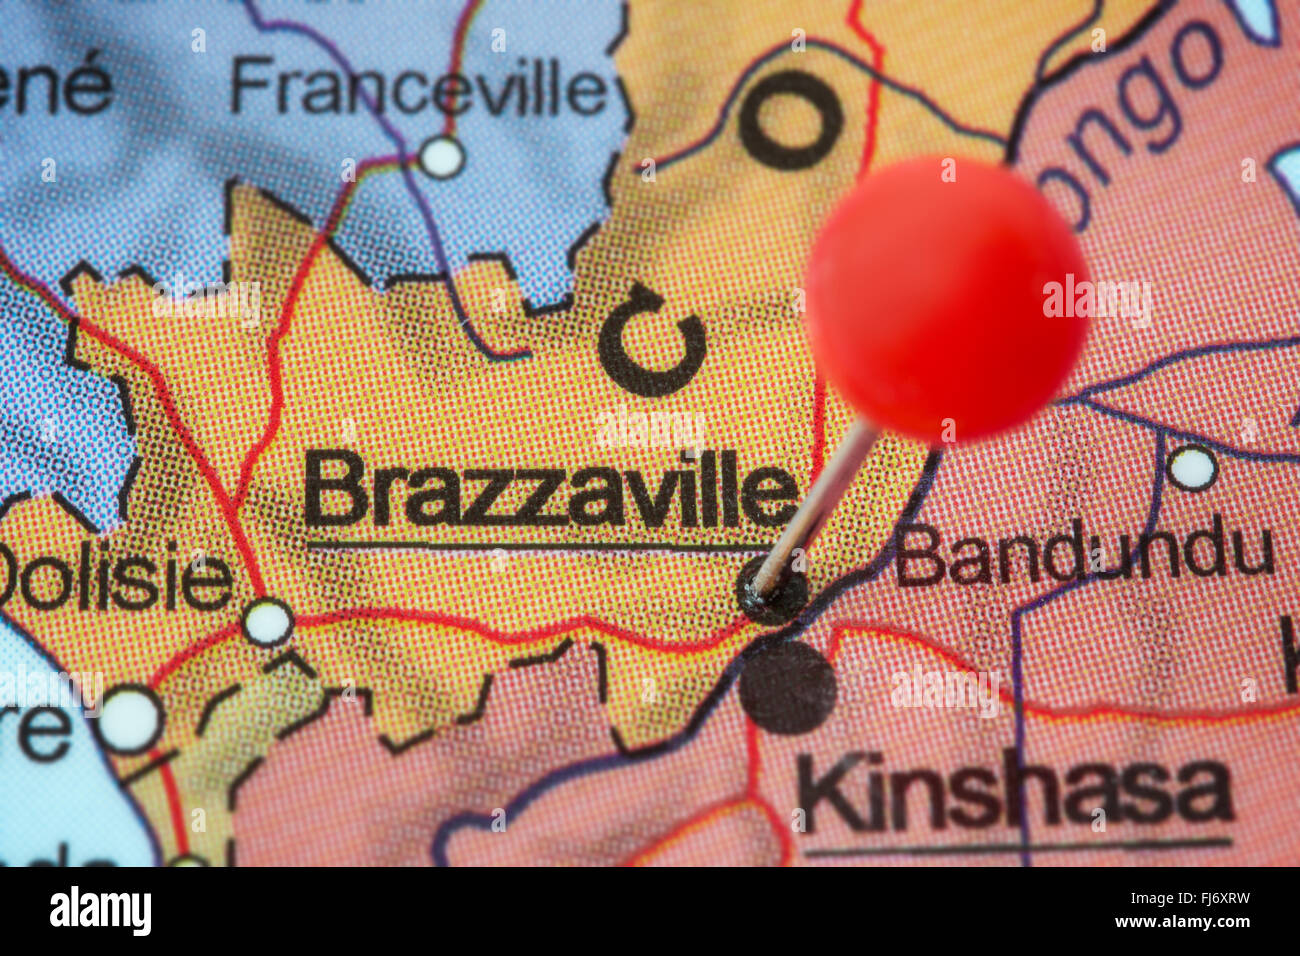 Close-up of a red pushpin in a map of Brazzaville, Republic of the Congo. - Stock Image